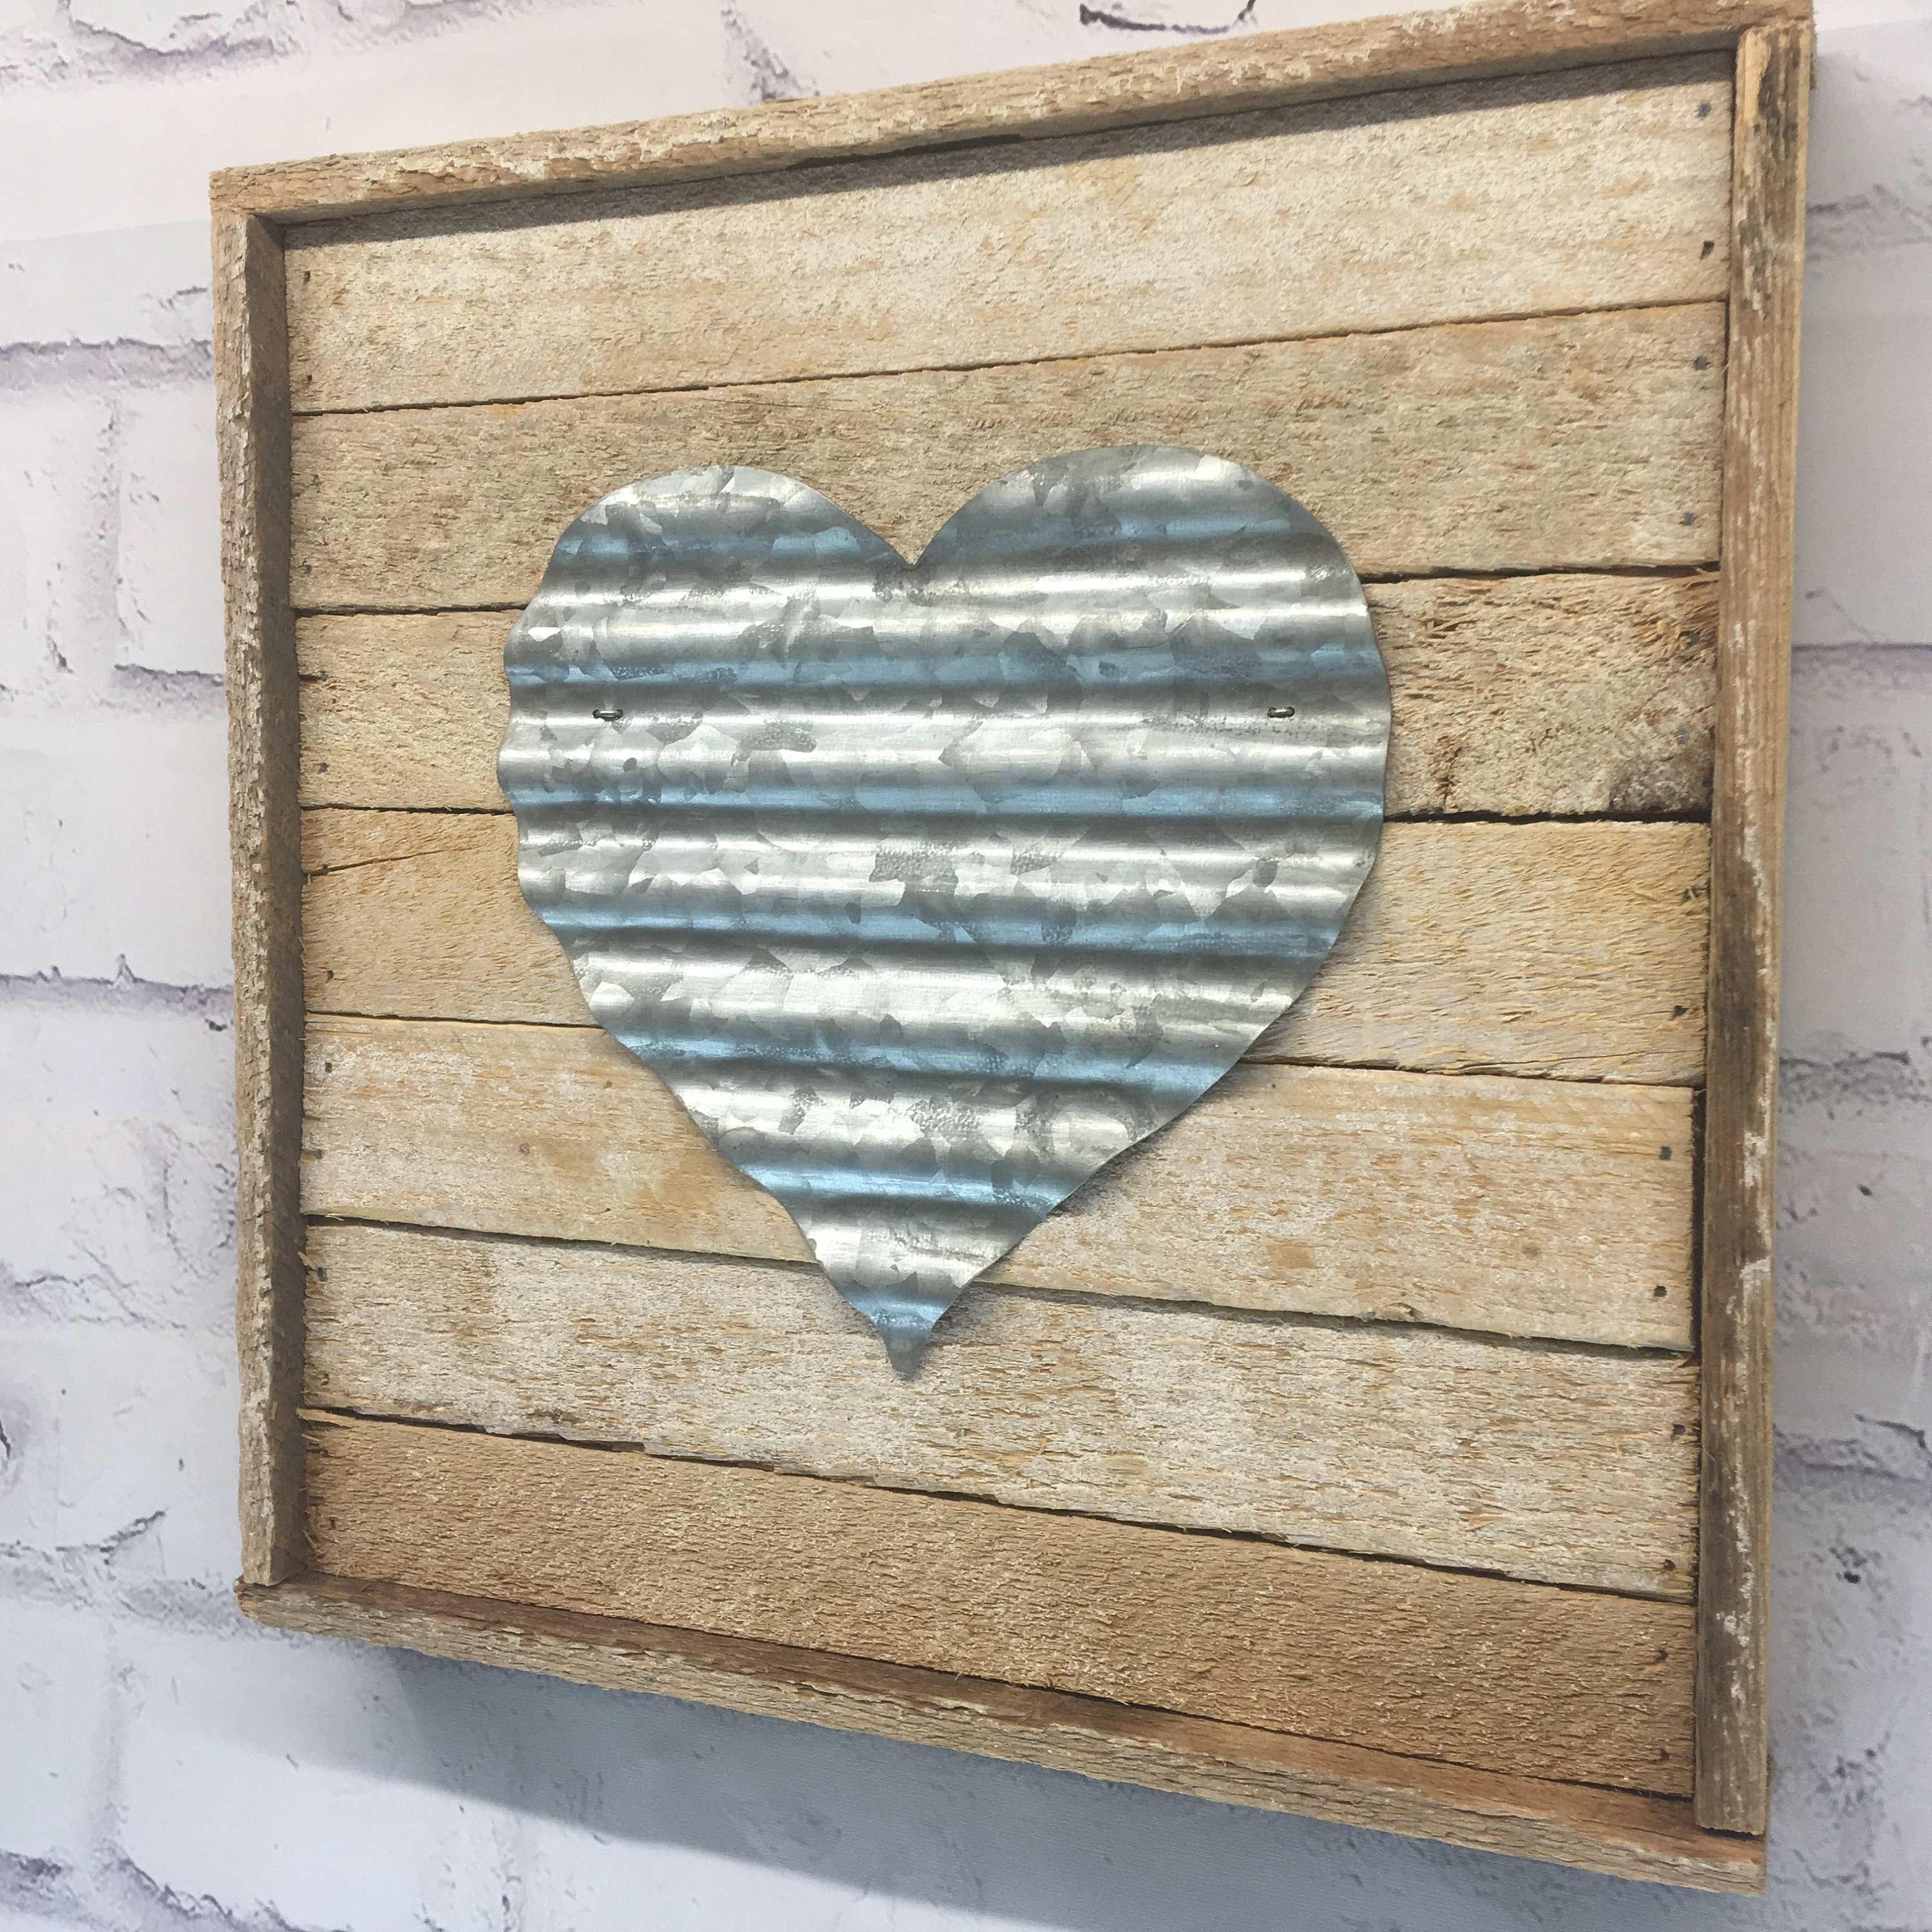 Valentine S Day Rustic Metal Heart Wall Decor Rustic Love Decor Rustic Heart Decor Housewarming Heart Decor Rustic Wall Decor